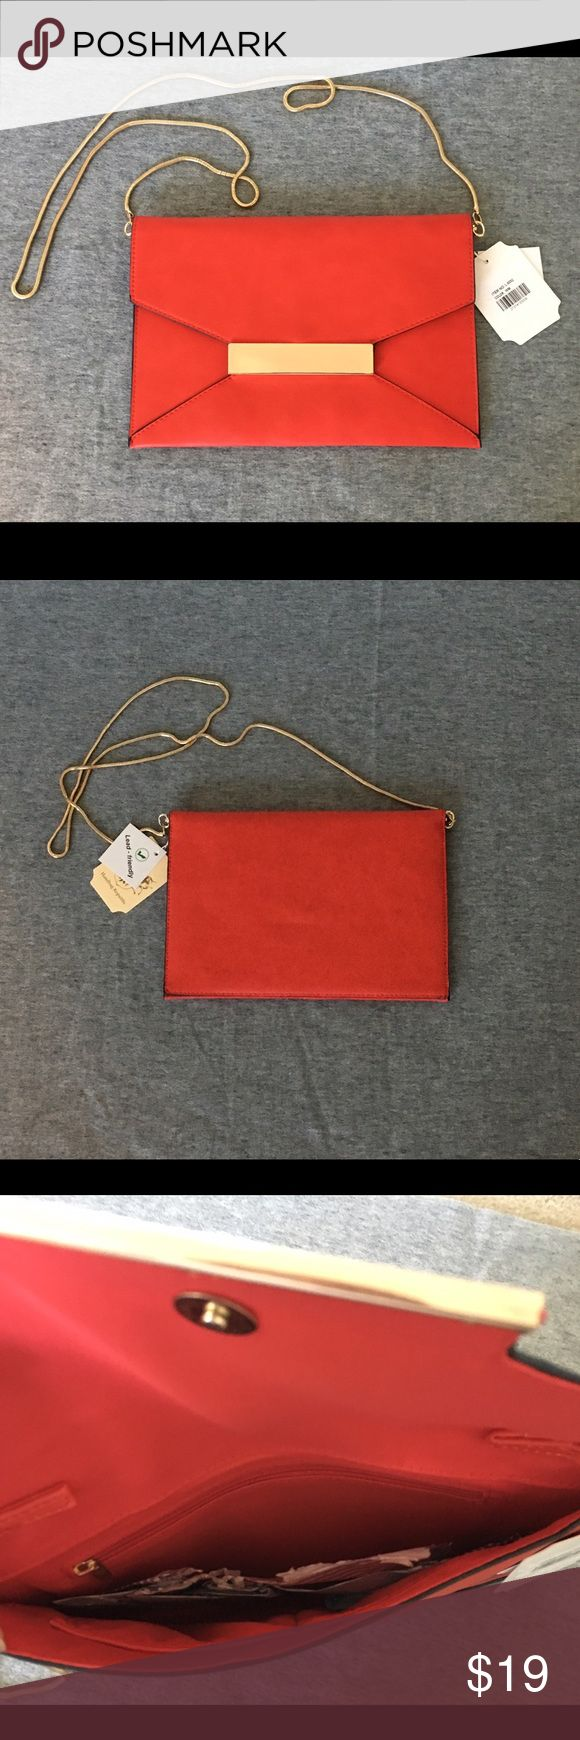 Red clutch with goldtone chain strap Faux leather flat clutch with zipper pocket and 2 slots. Detachable strap Bags Clutches & Wristlets